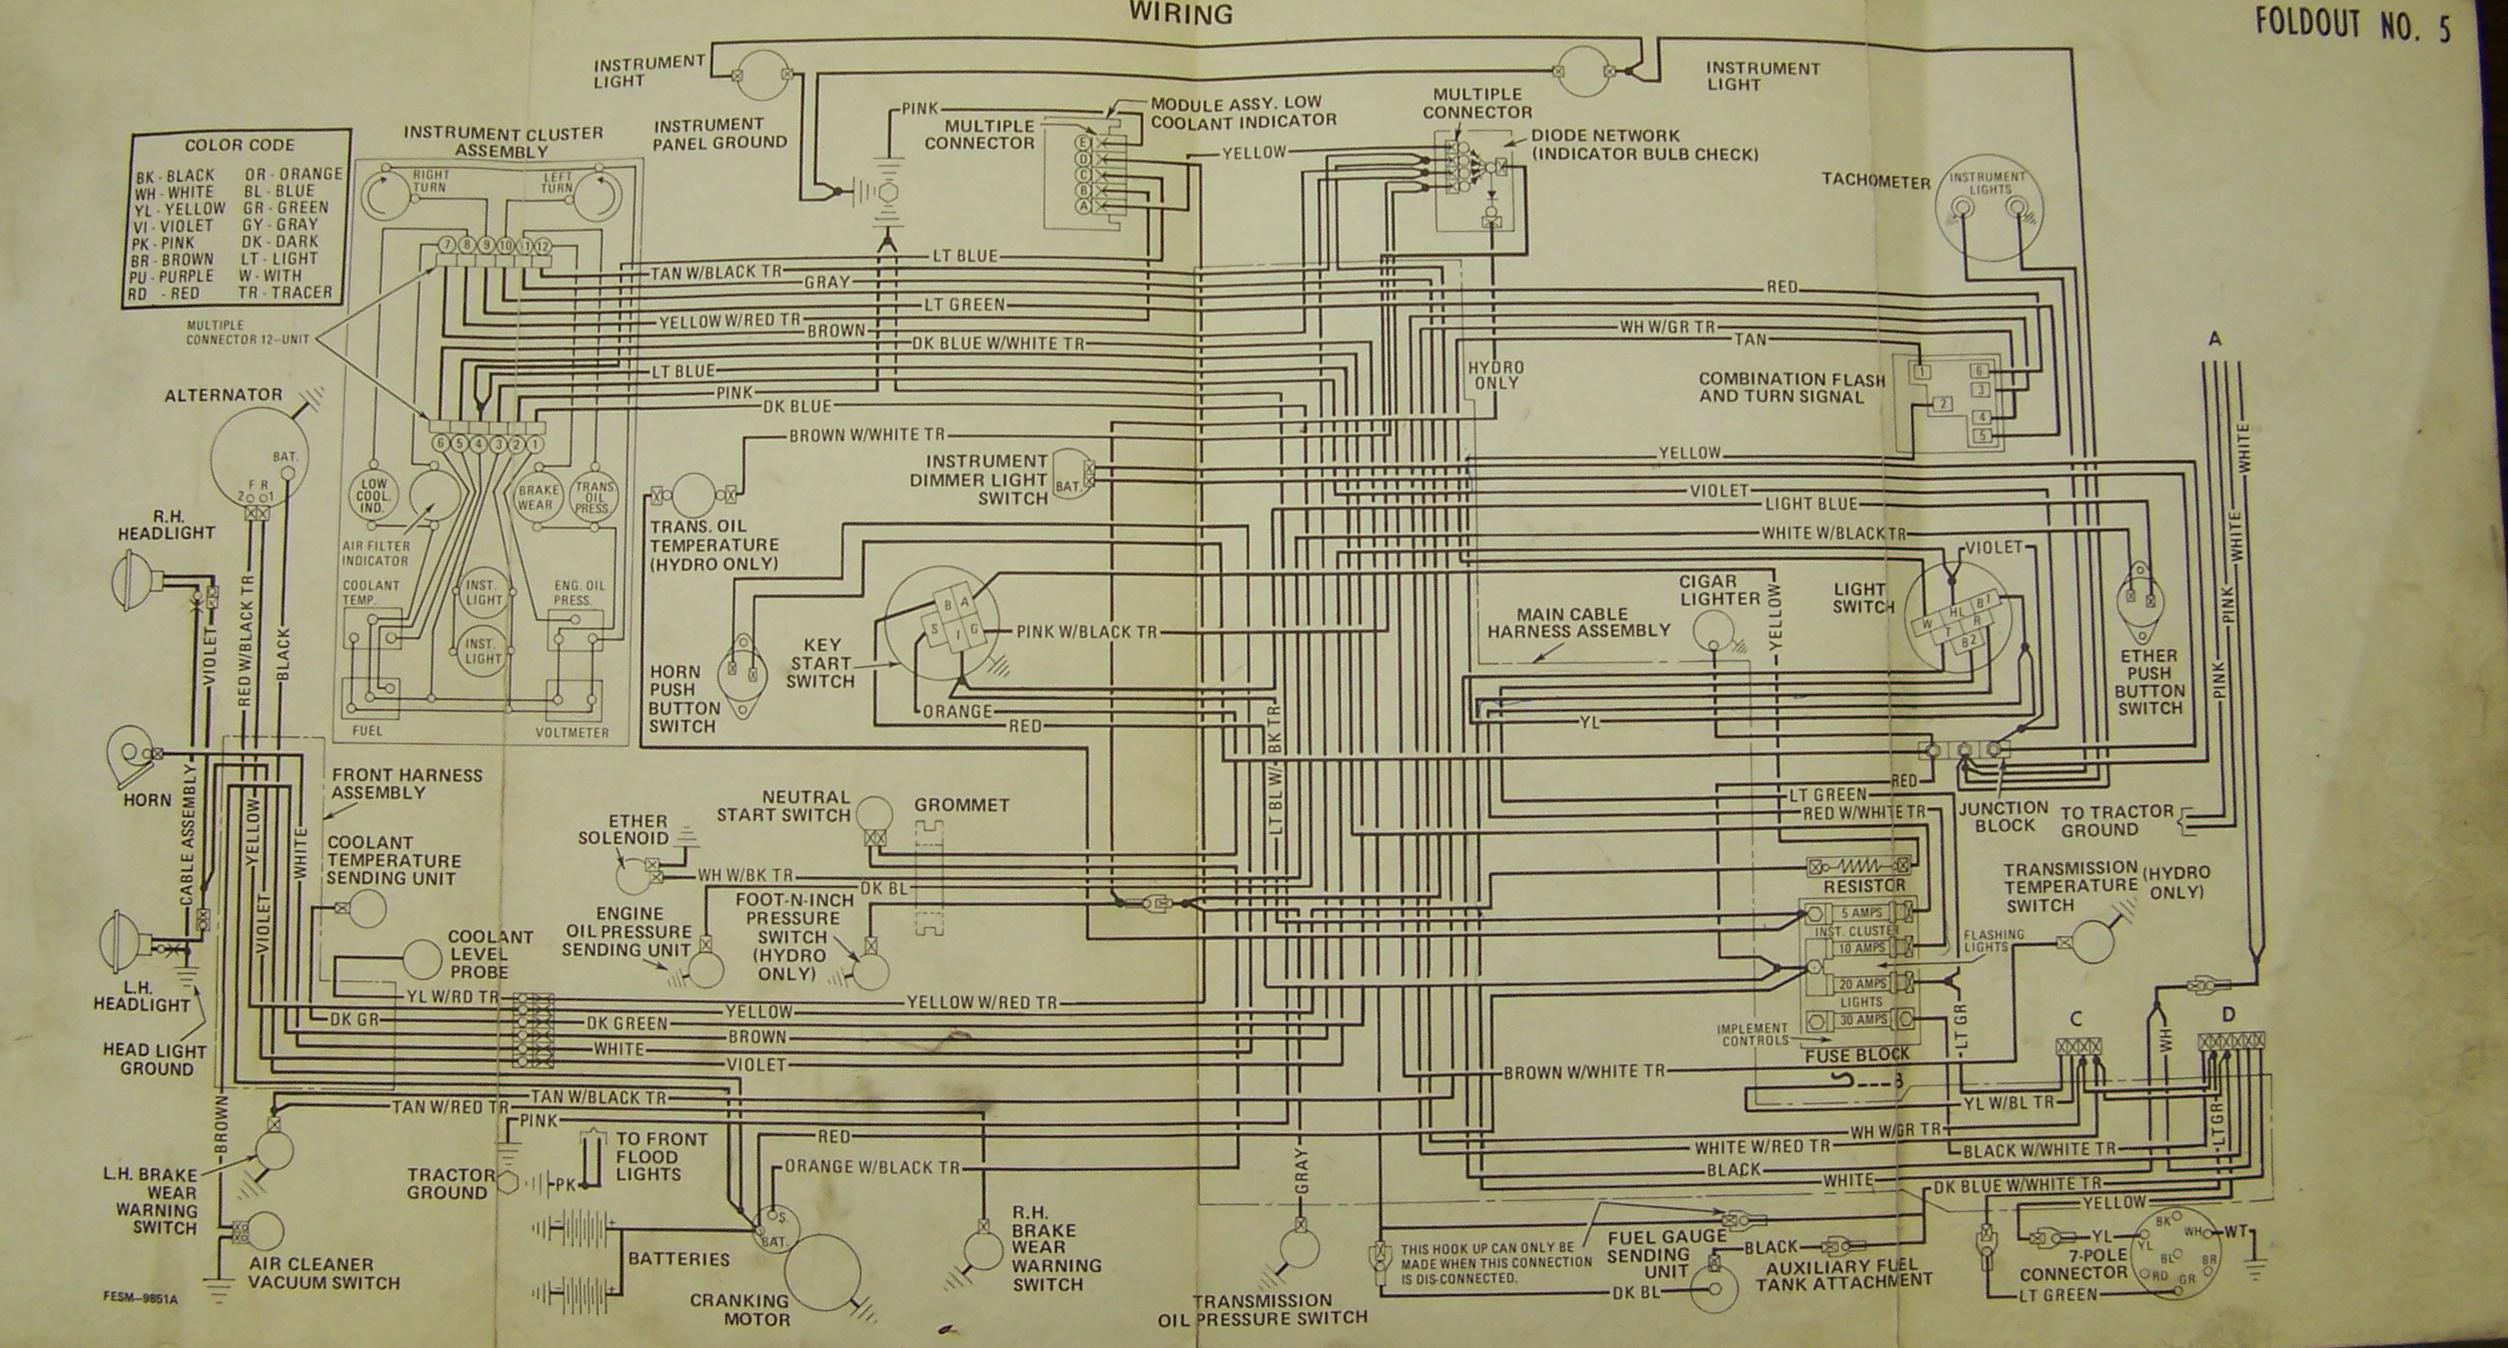 International Dt466 Wiring Diagram | Schematic Diagram on international 4900 wiring schematic, international harvester combines toys, international motor diagrams, international harvester 466 diesel engine series, international l1700 wiring, international harvester generator wiring diagram, international fuel injector parts diagrams, international truck electrical diagrams, international electrical wiring diagrams, international wiring diagram for a 2008, international maxxforce engines, international maxxforce dt parts breakdown, international oil pressure sensor location, international truck fuse panel diagram, international truck wiring diagram, international navistar parts diagrams, international engine diagram, international truck wiring 12v starter, international 4700 wiring diagram, international 4700 fuse panel diagram,